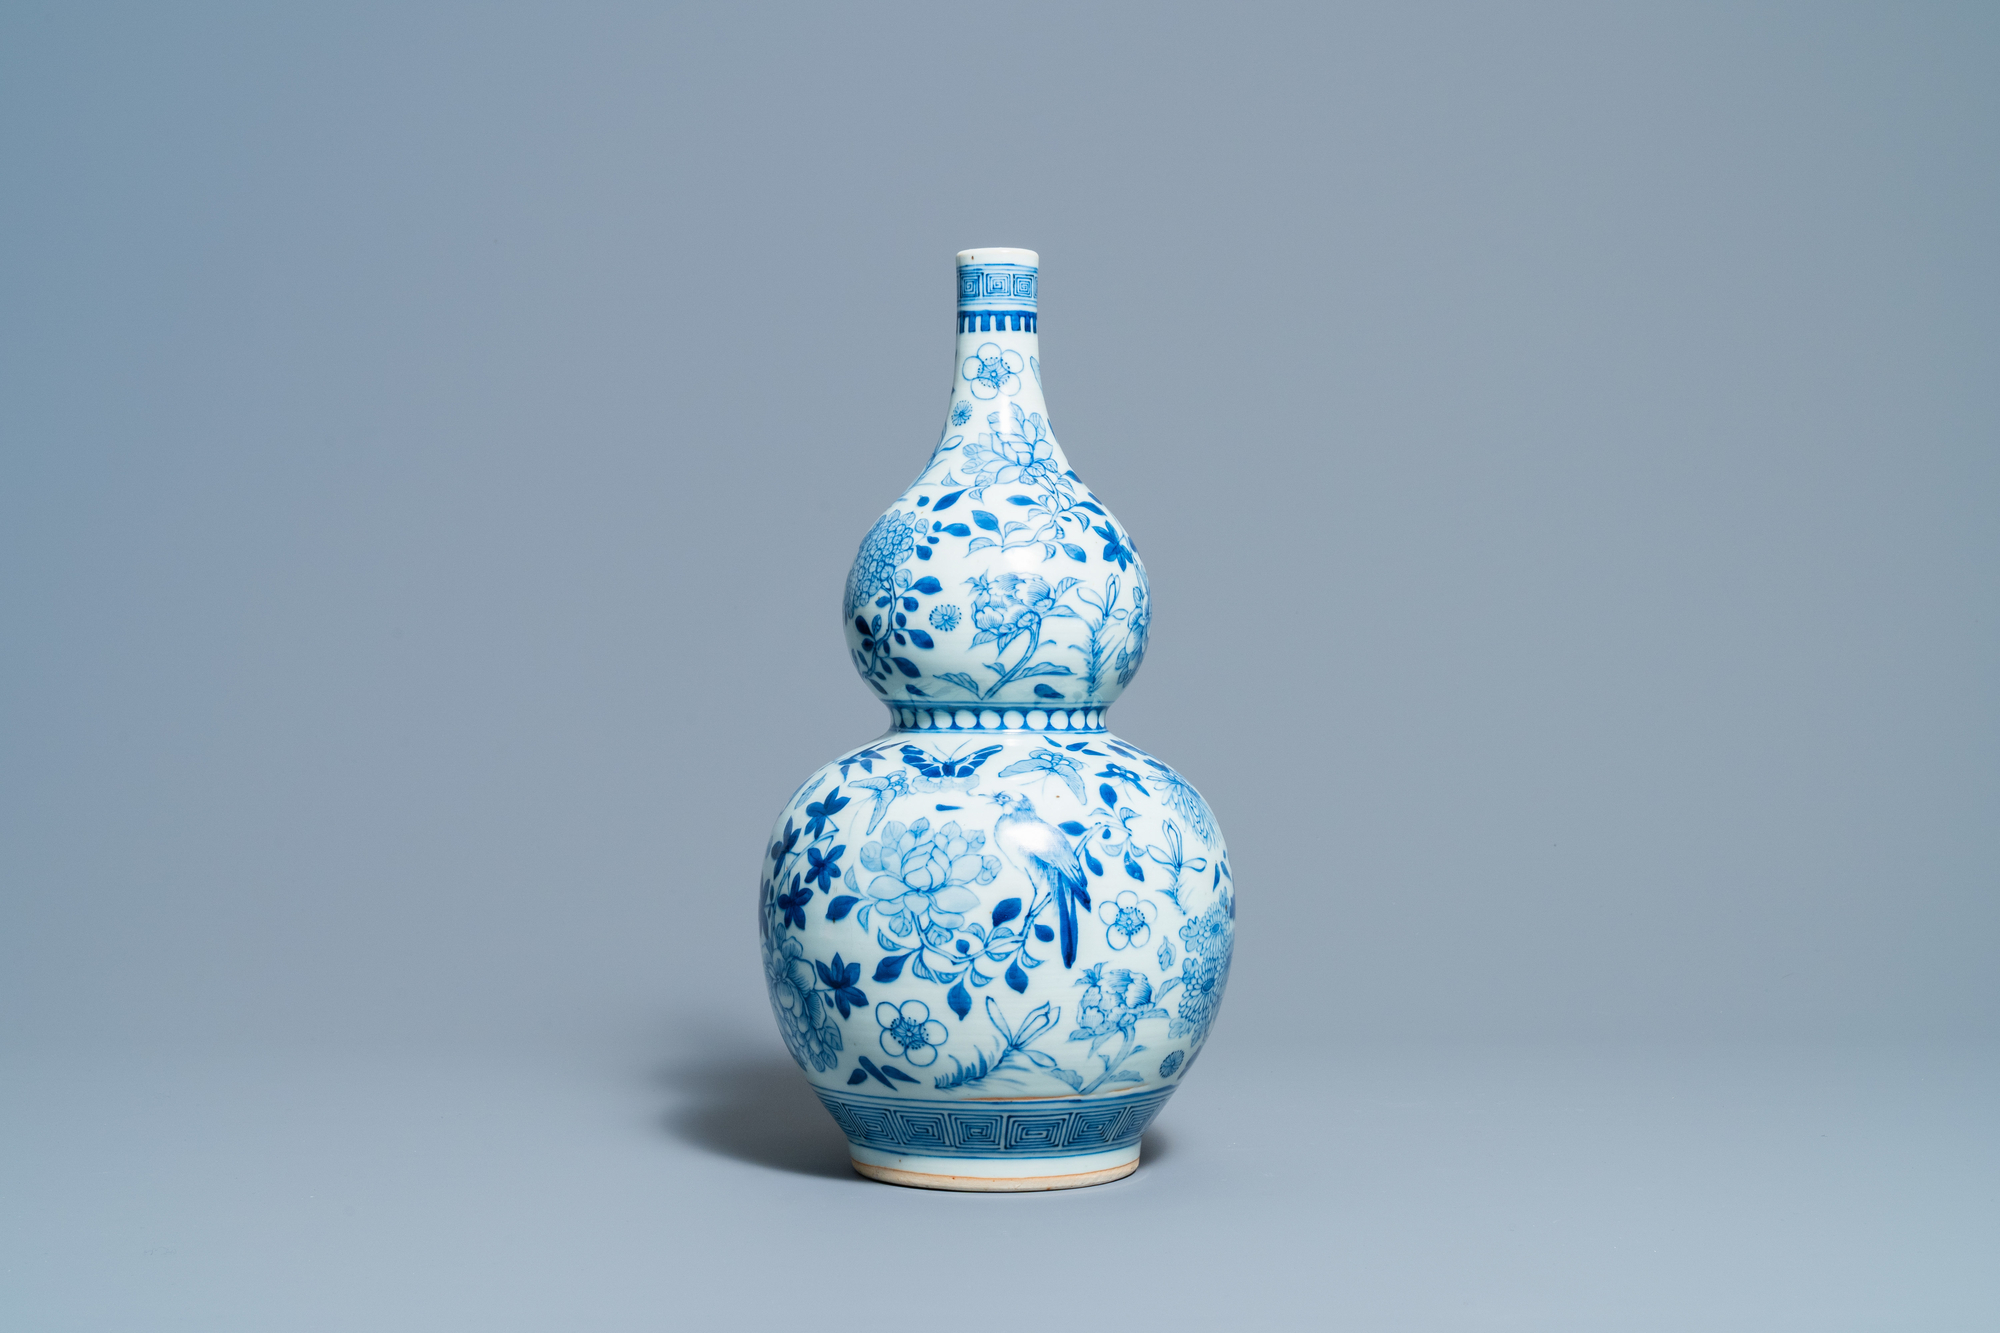 A Chinese blue and white double gourd vase, 19th C. - Image 2 of 6